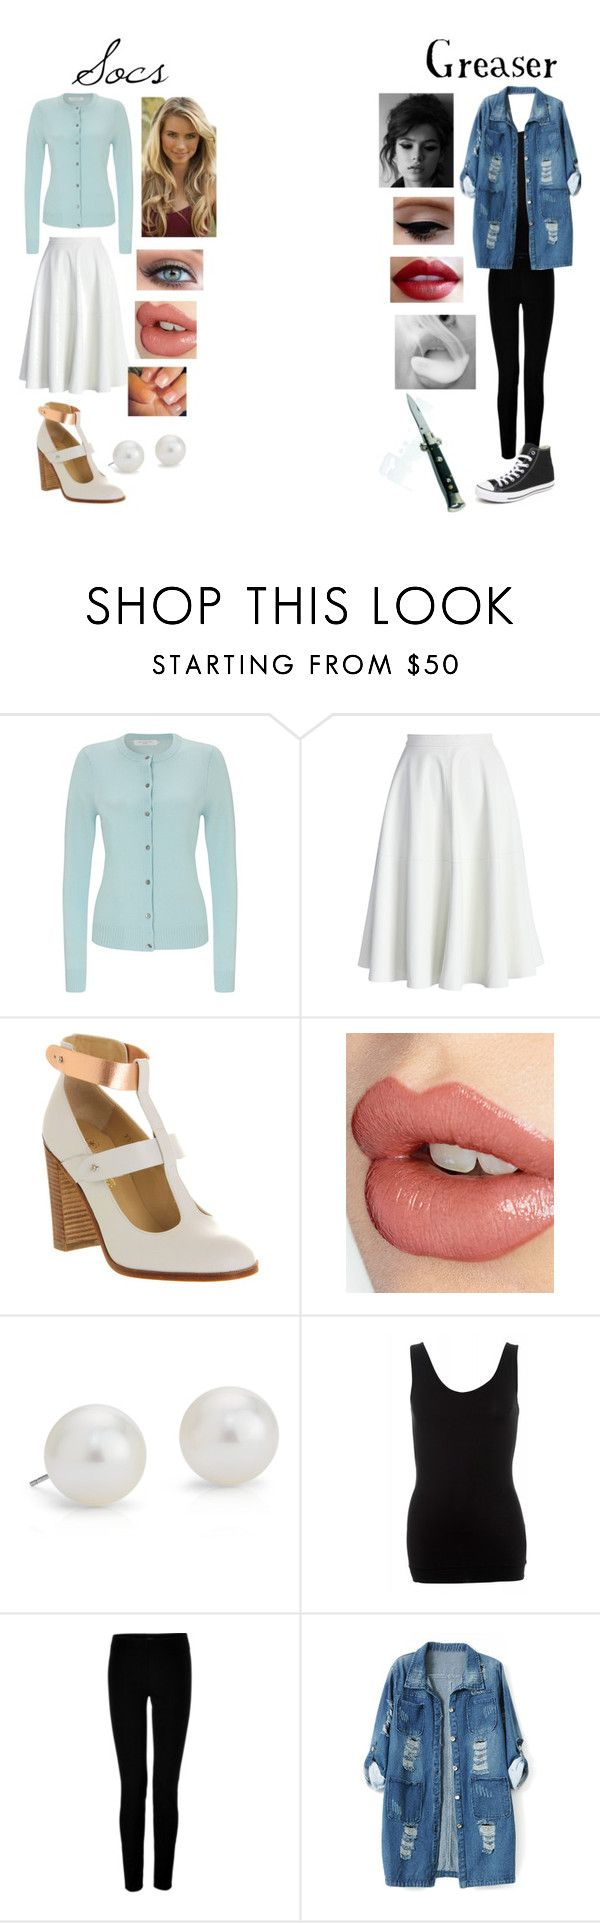 """""""Greasers and Socs!"""" by stay-gold-ponyboy-1 ❤ liked on Polyvore featuring John Lewis, Chicwish, Victoria's Secret, Charlotte Tilbury, Blue Nile, DAY Birger et Mikkelsen, Joseph, Chicnova Fashion and Converse"""